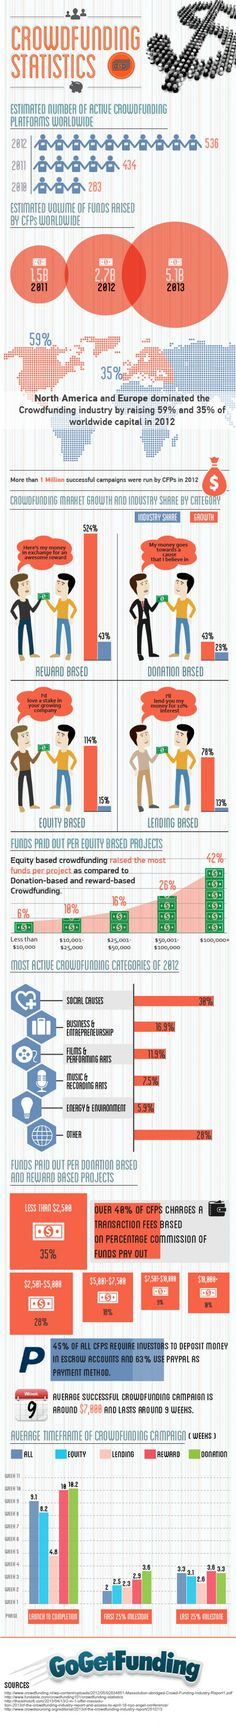 Crowdfunding Statistics and Trends Infographic. http://www.indiegogo.com/projects/empowering-women-around-the-globe/x/3085504